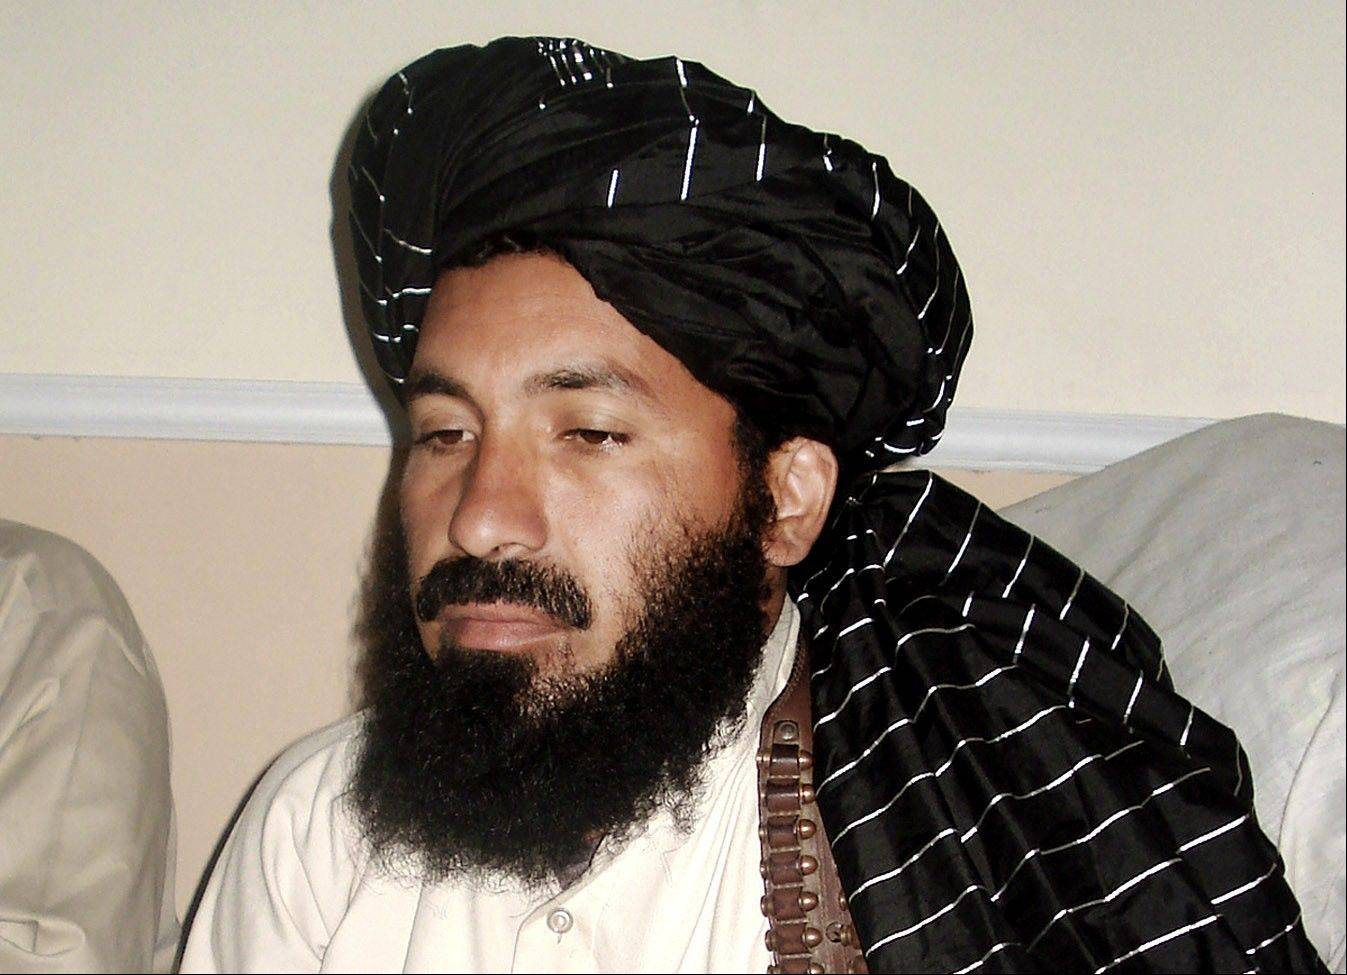 Five Pakistani security officials said the Pakistani militant commander Maulvi Nazir, was reportedly among nine people killed in a missile strike on a house in the village of Angoor Adda in the South Waziristan tribal region early Thursday. The officials spoke on condition of anonymity because they were not authorized to brief the media.